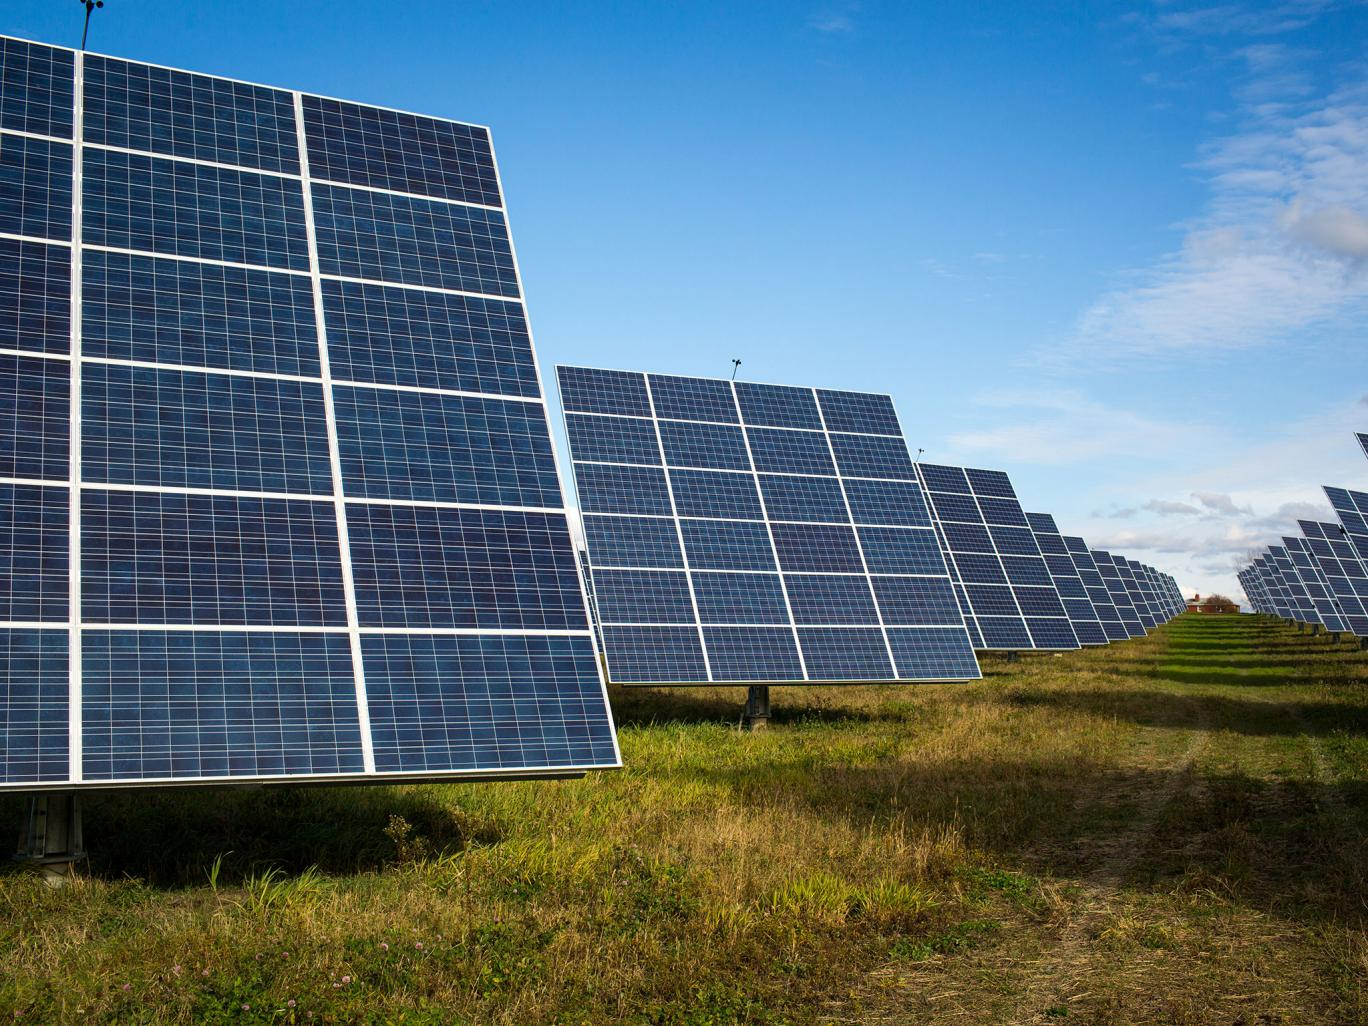 How To Make Live Wallpaper Work Iphone X Jigawa Solar Power Plant To Generate 80mw Information